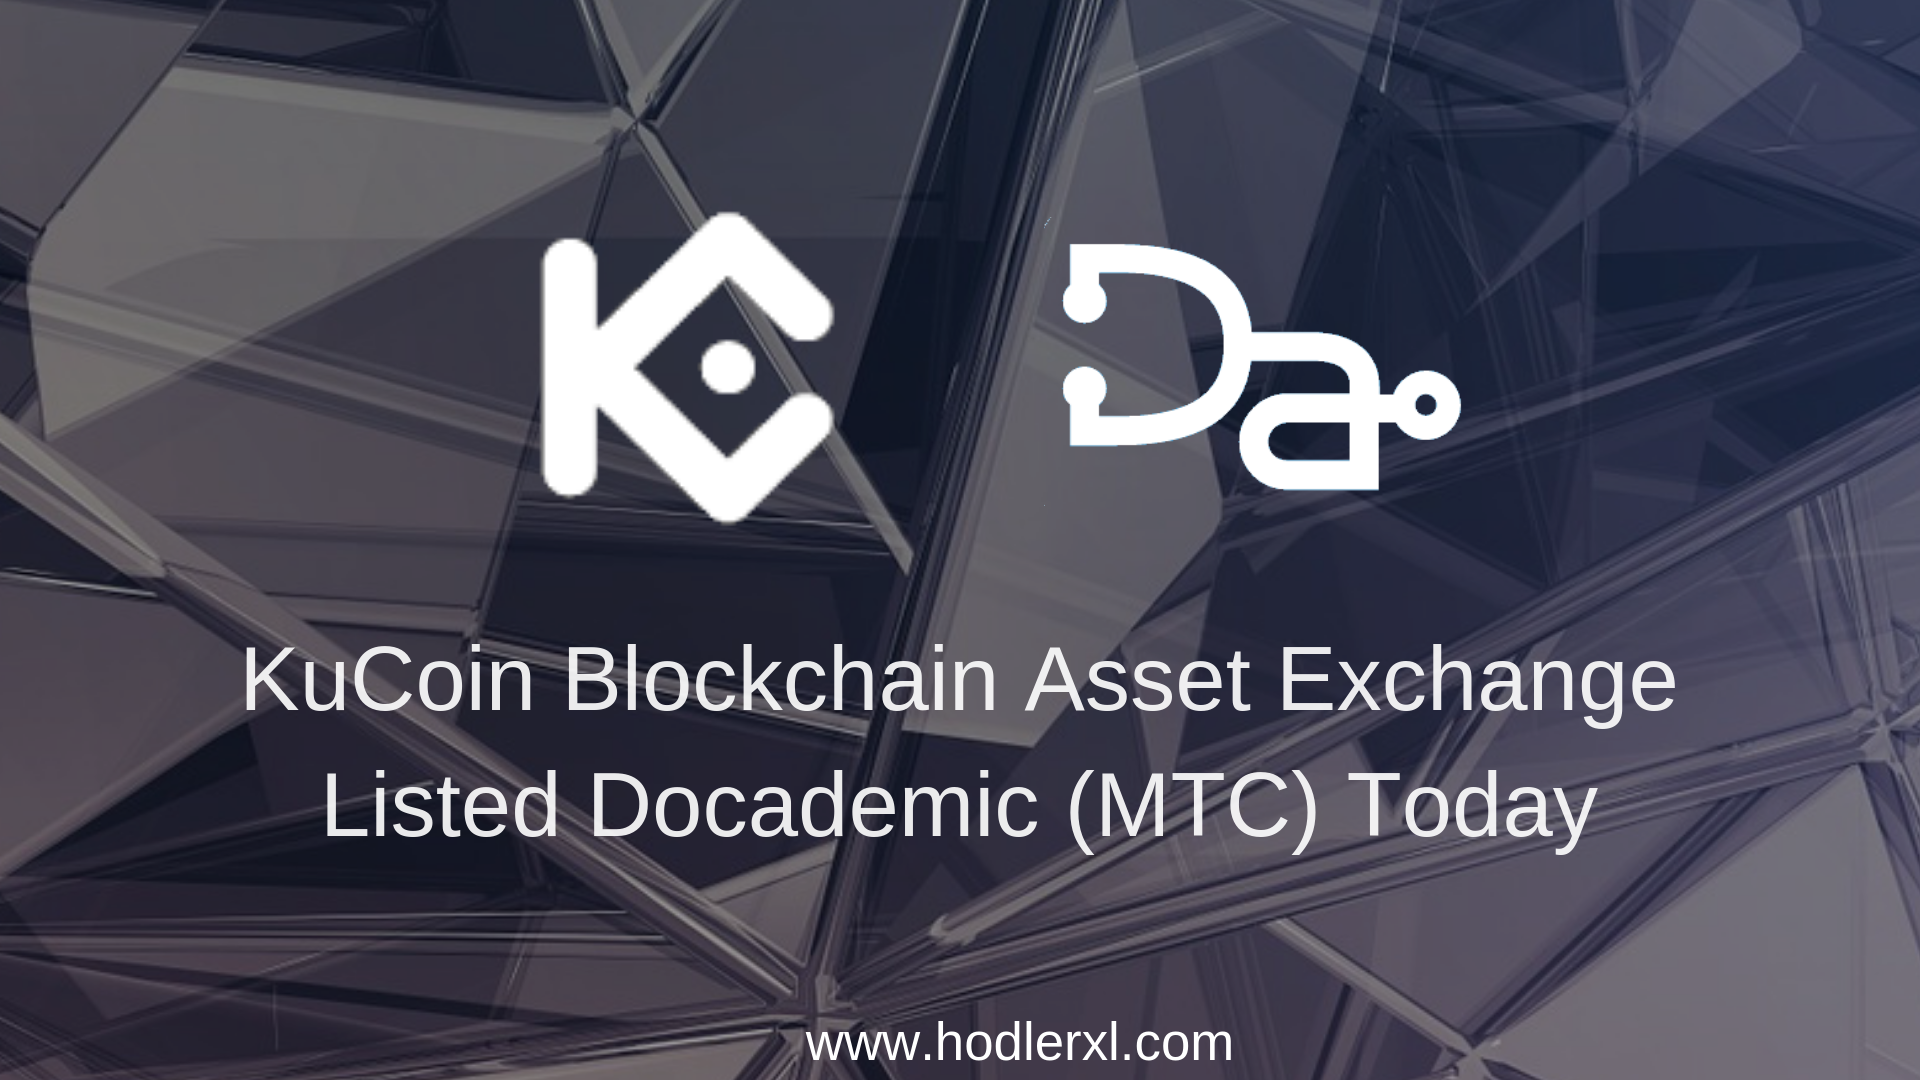 KuCoin Blockchain Asset Exchange Listed Docademic (MTC) Today